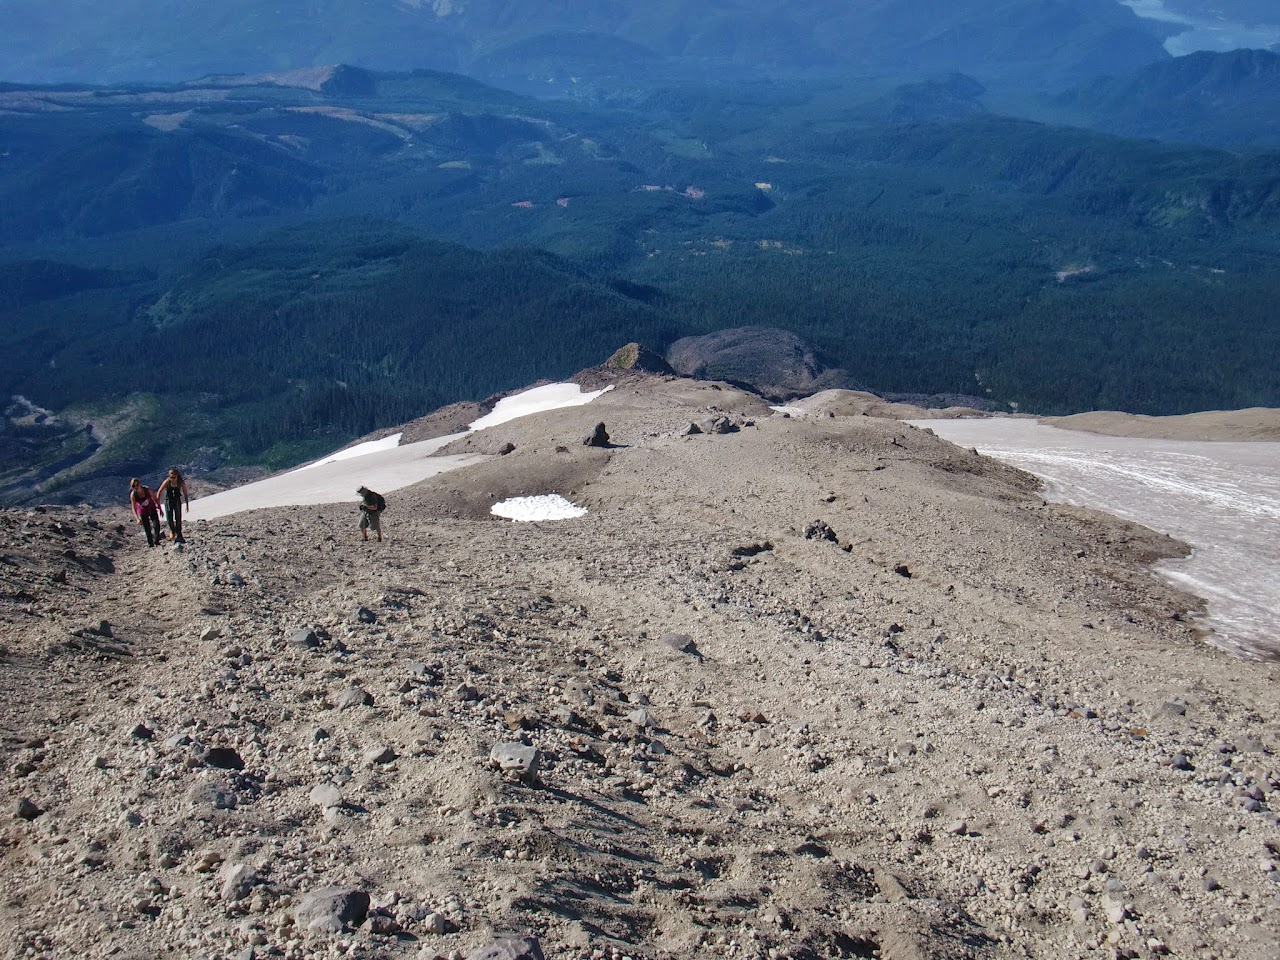 Mount Saint Helens Summit 2014 - CIMG5747.JPG